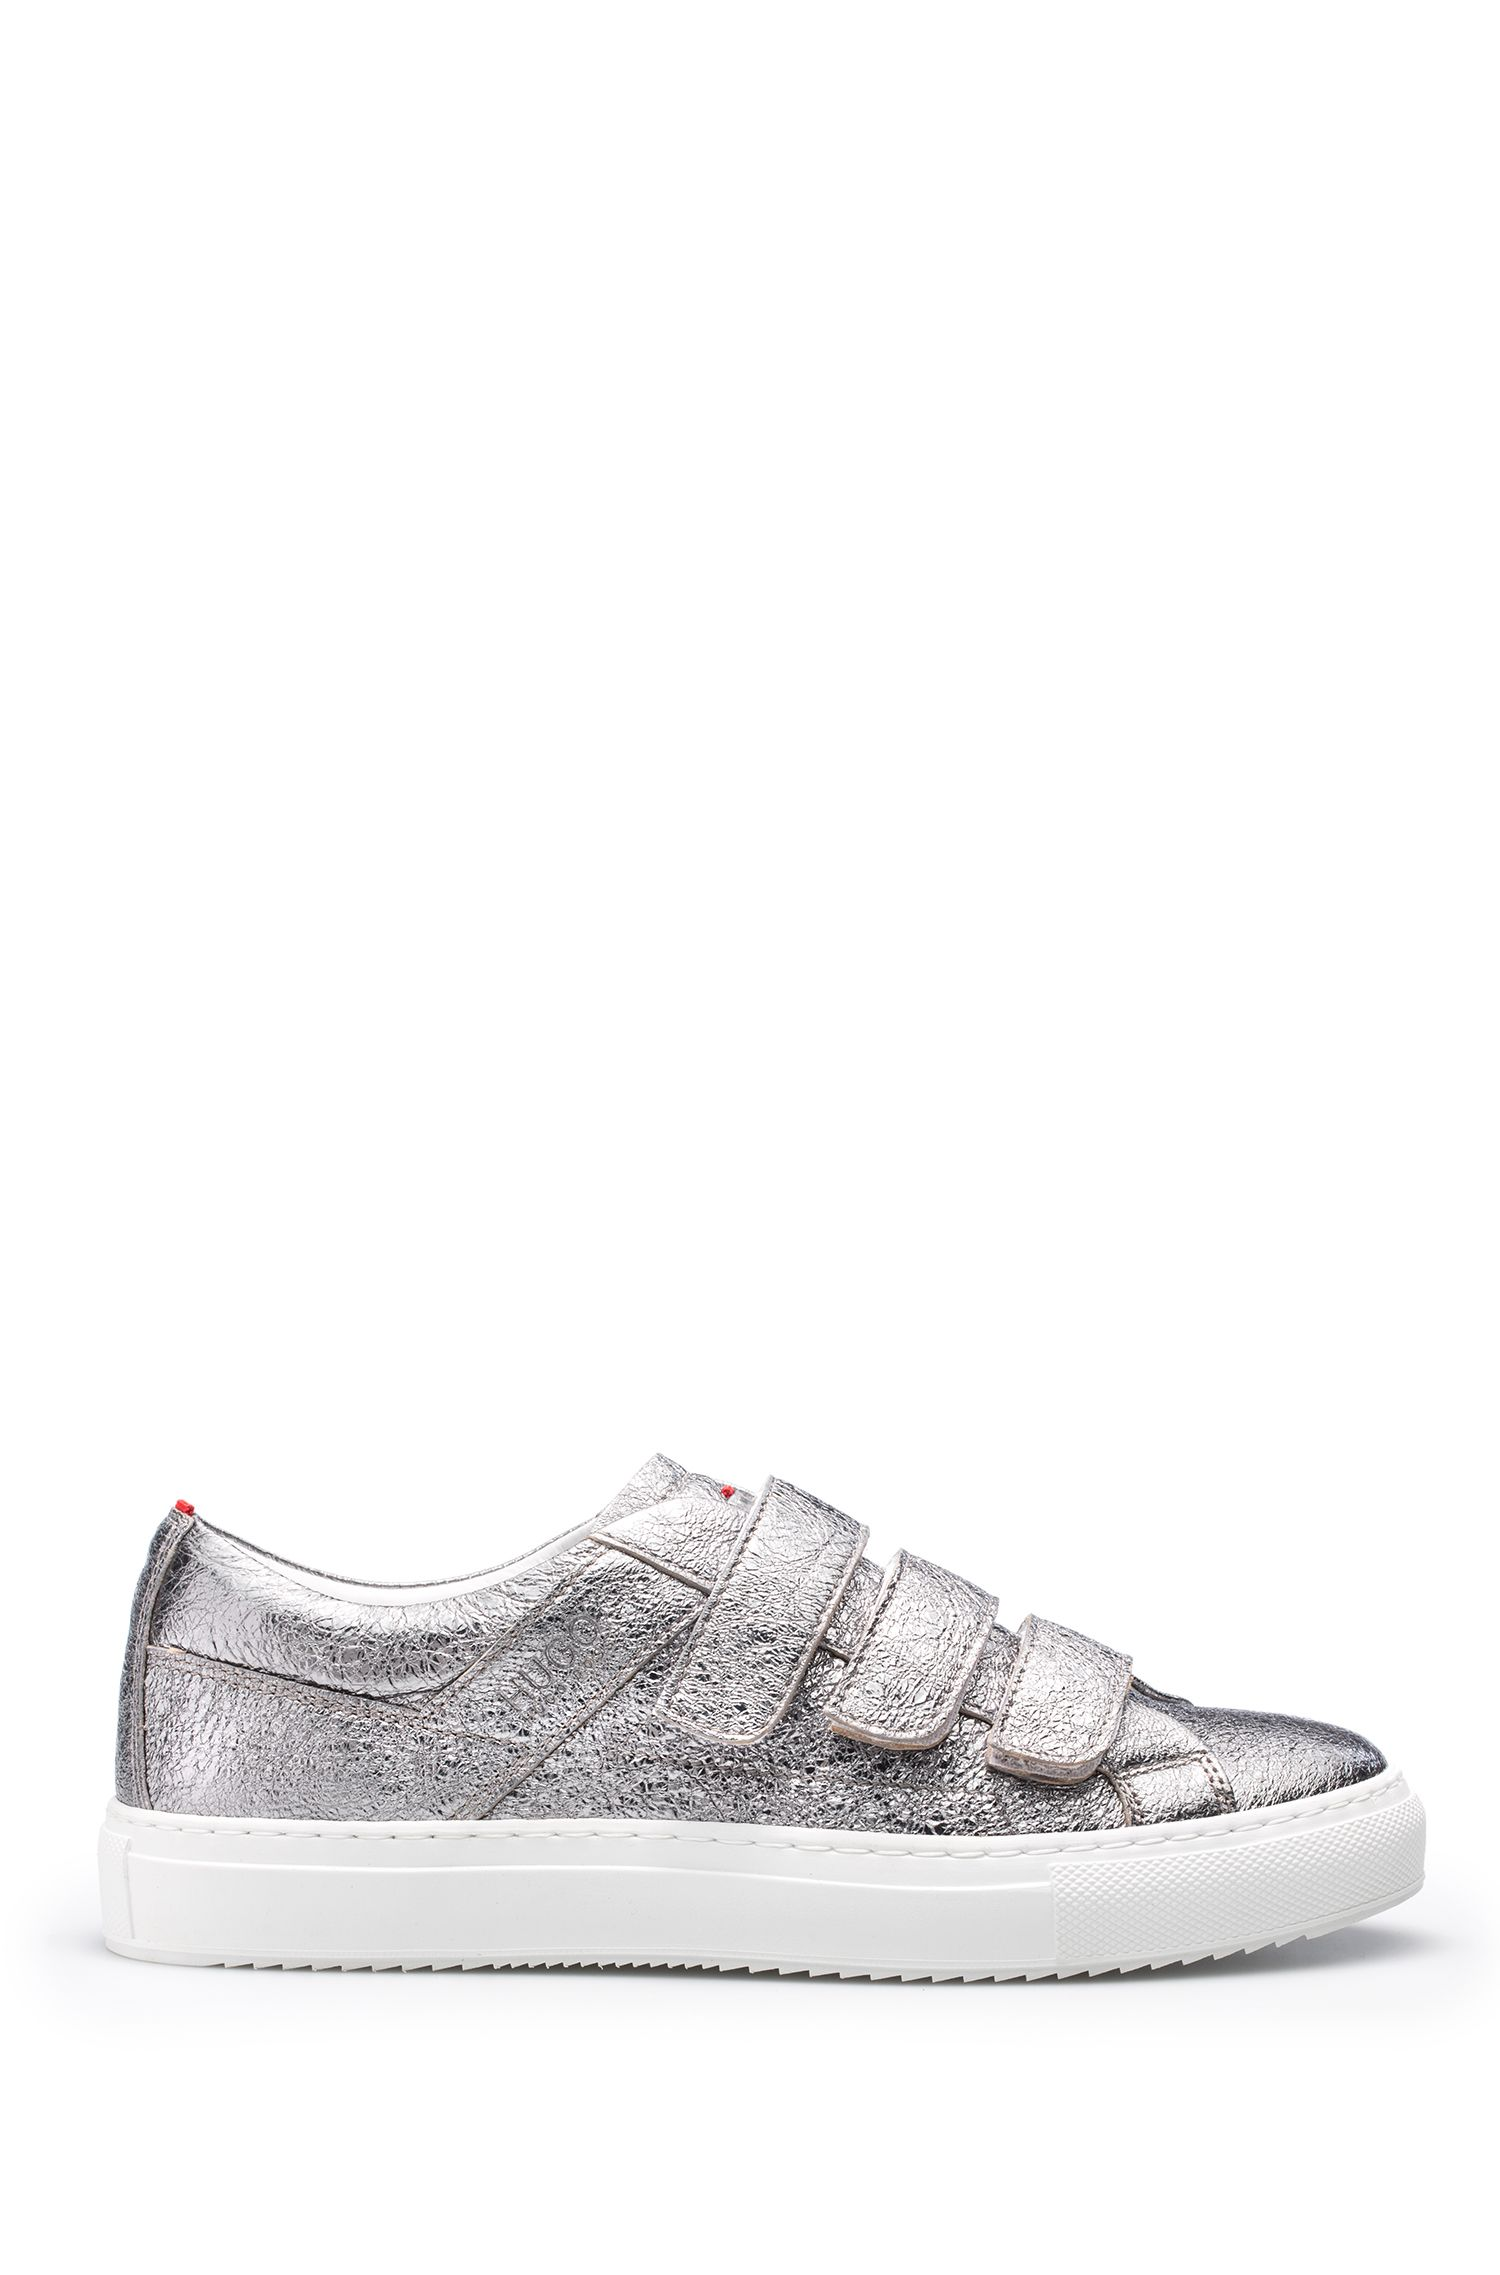 Metallic Leather Sneakers | Camden Strap L, Patterned